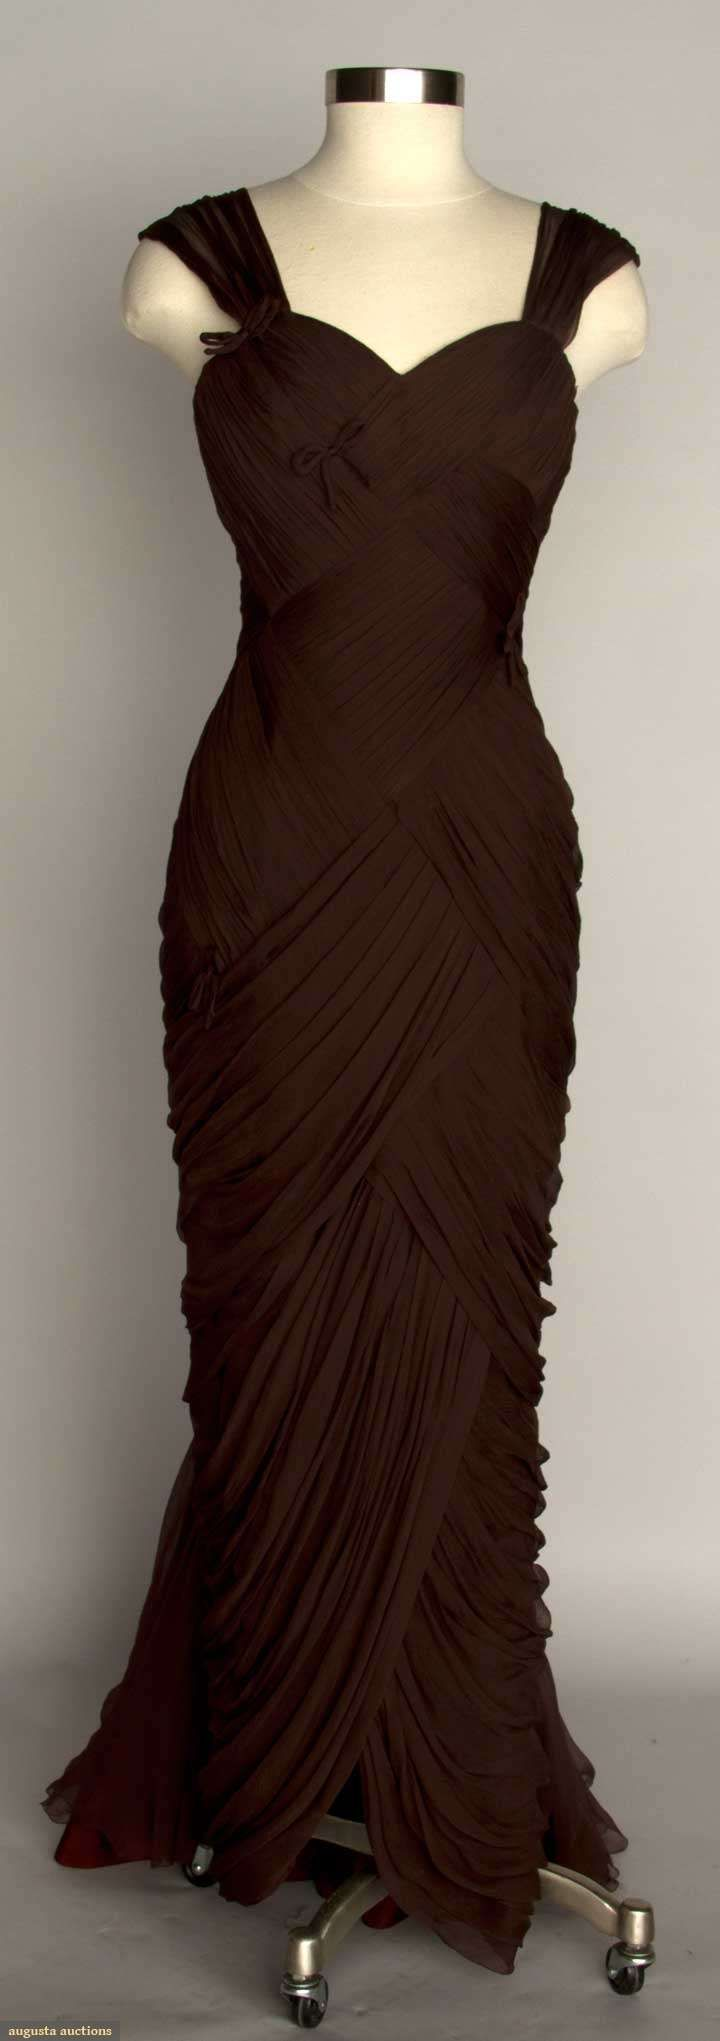 ~Draped Chiffon Evening Gown, C. 1950, Augusta Auctions~  #1950s  #eveningwear  #black